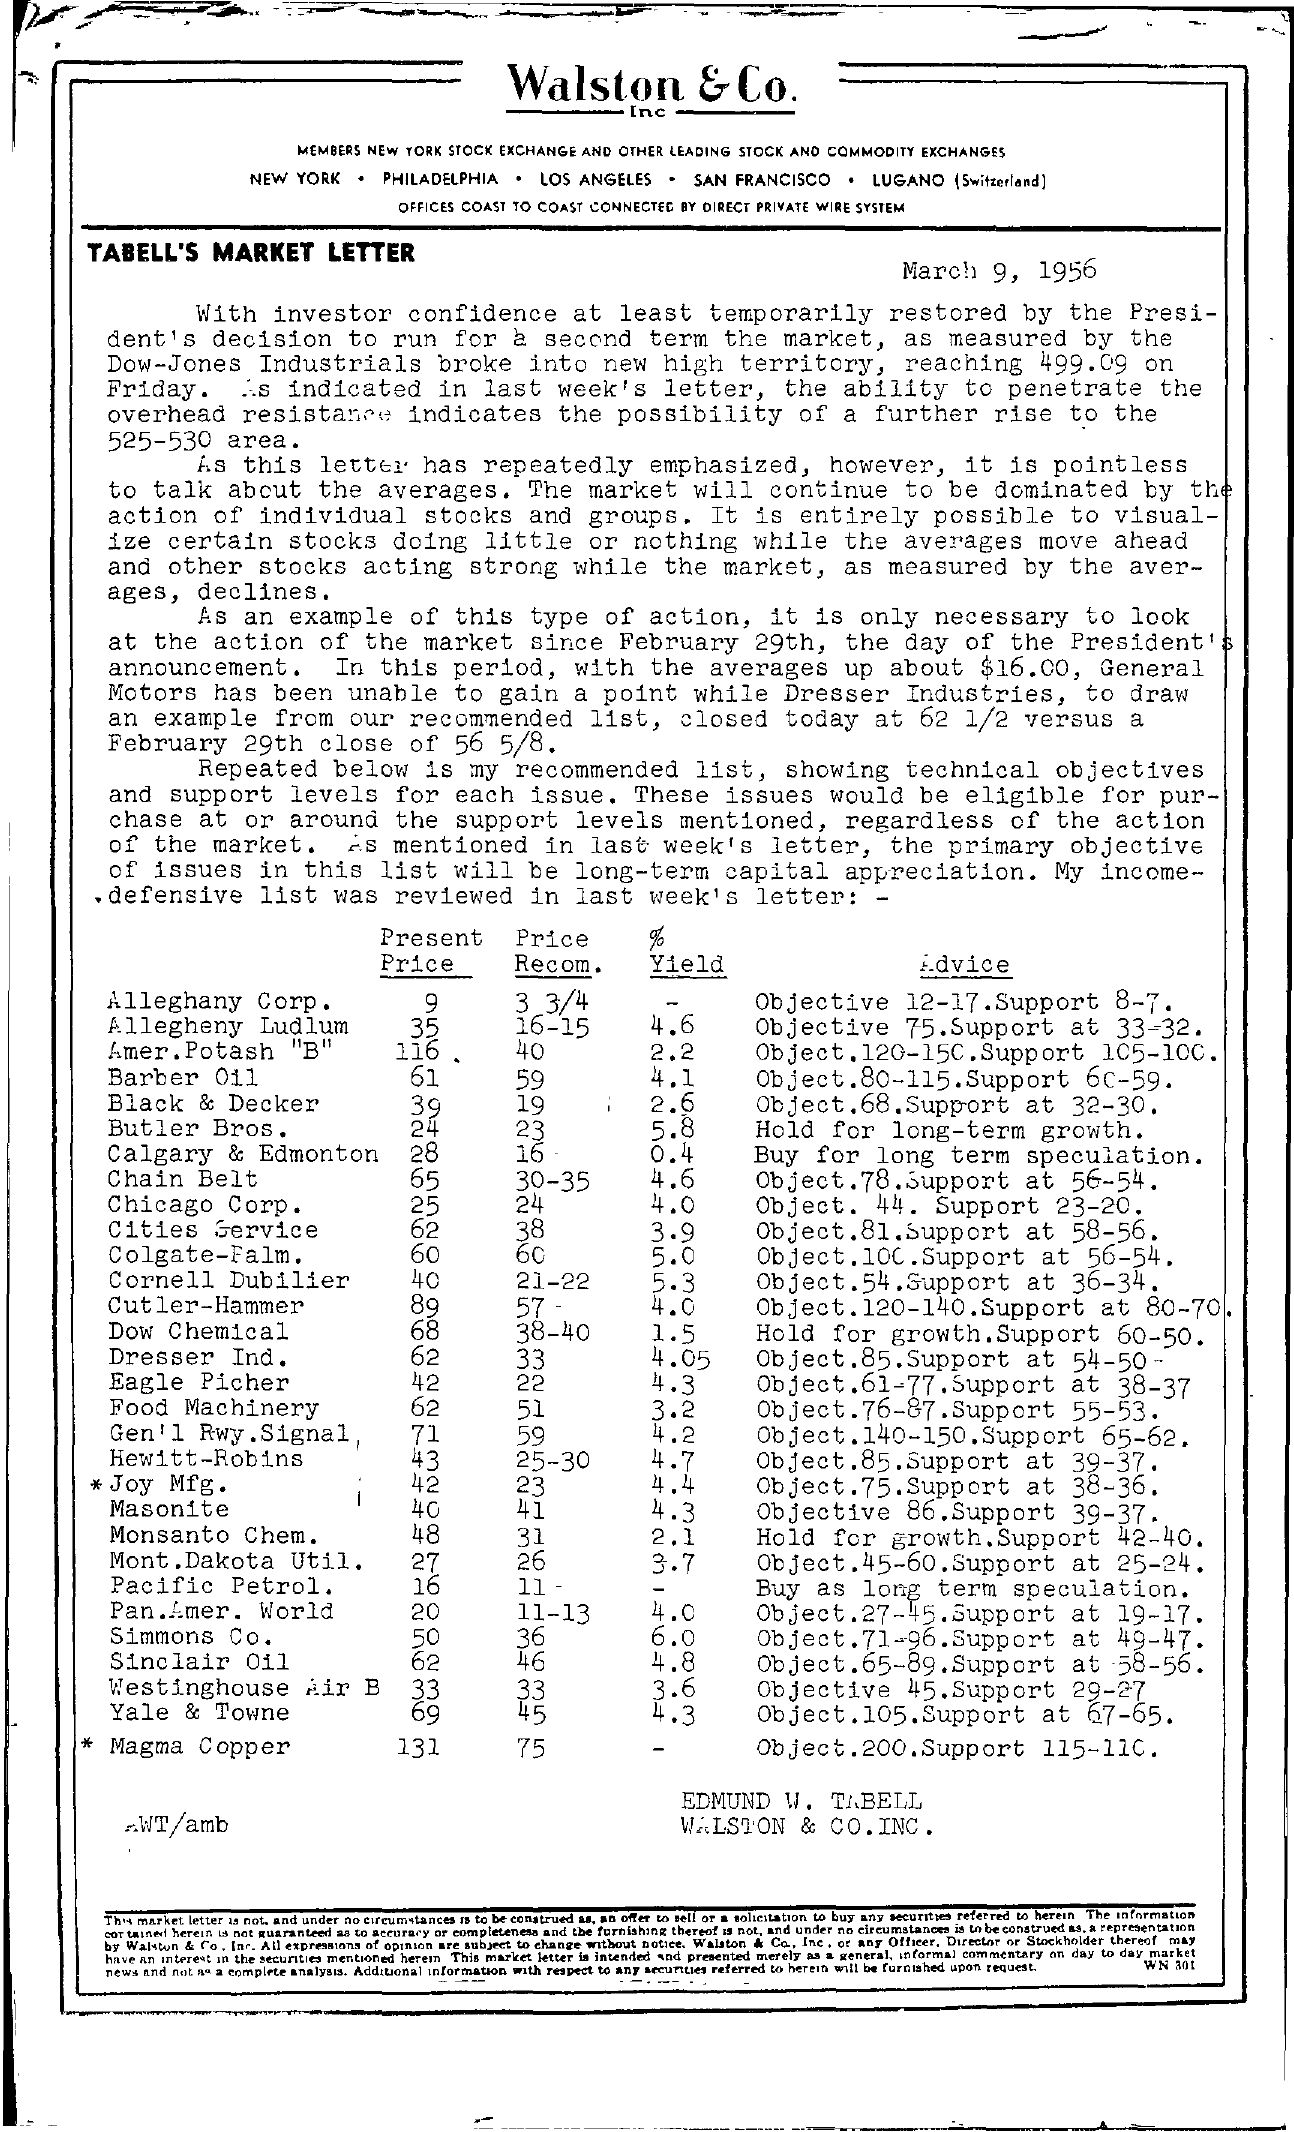 Tabell's Market Letter - March 09, 1956